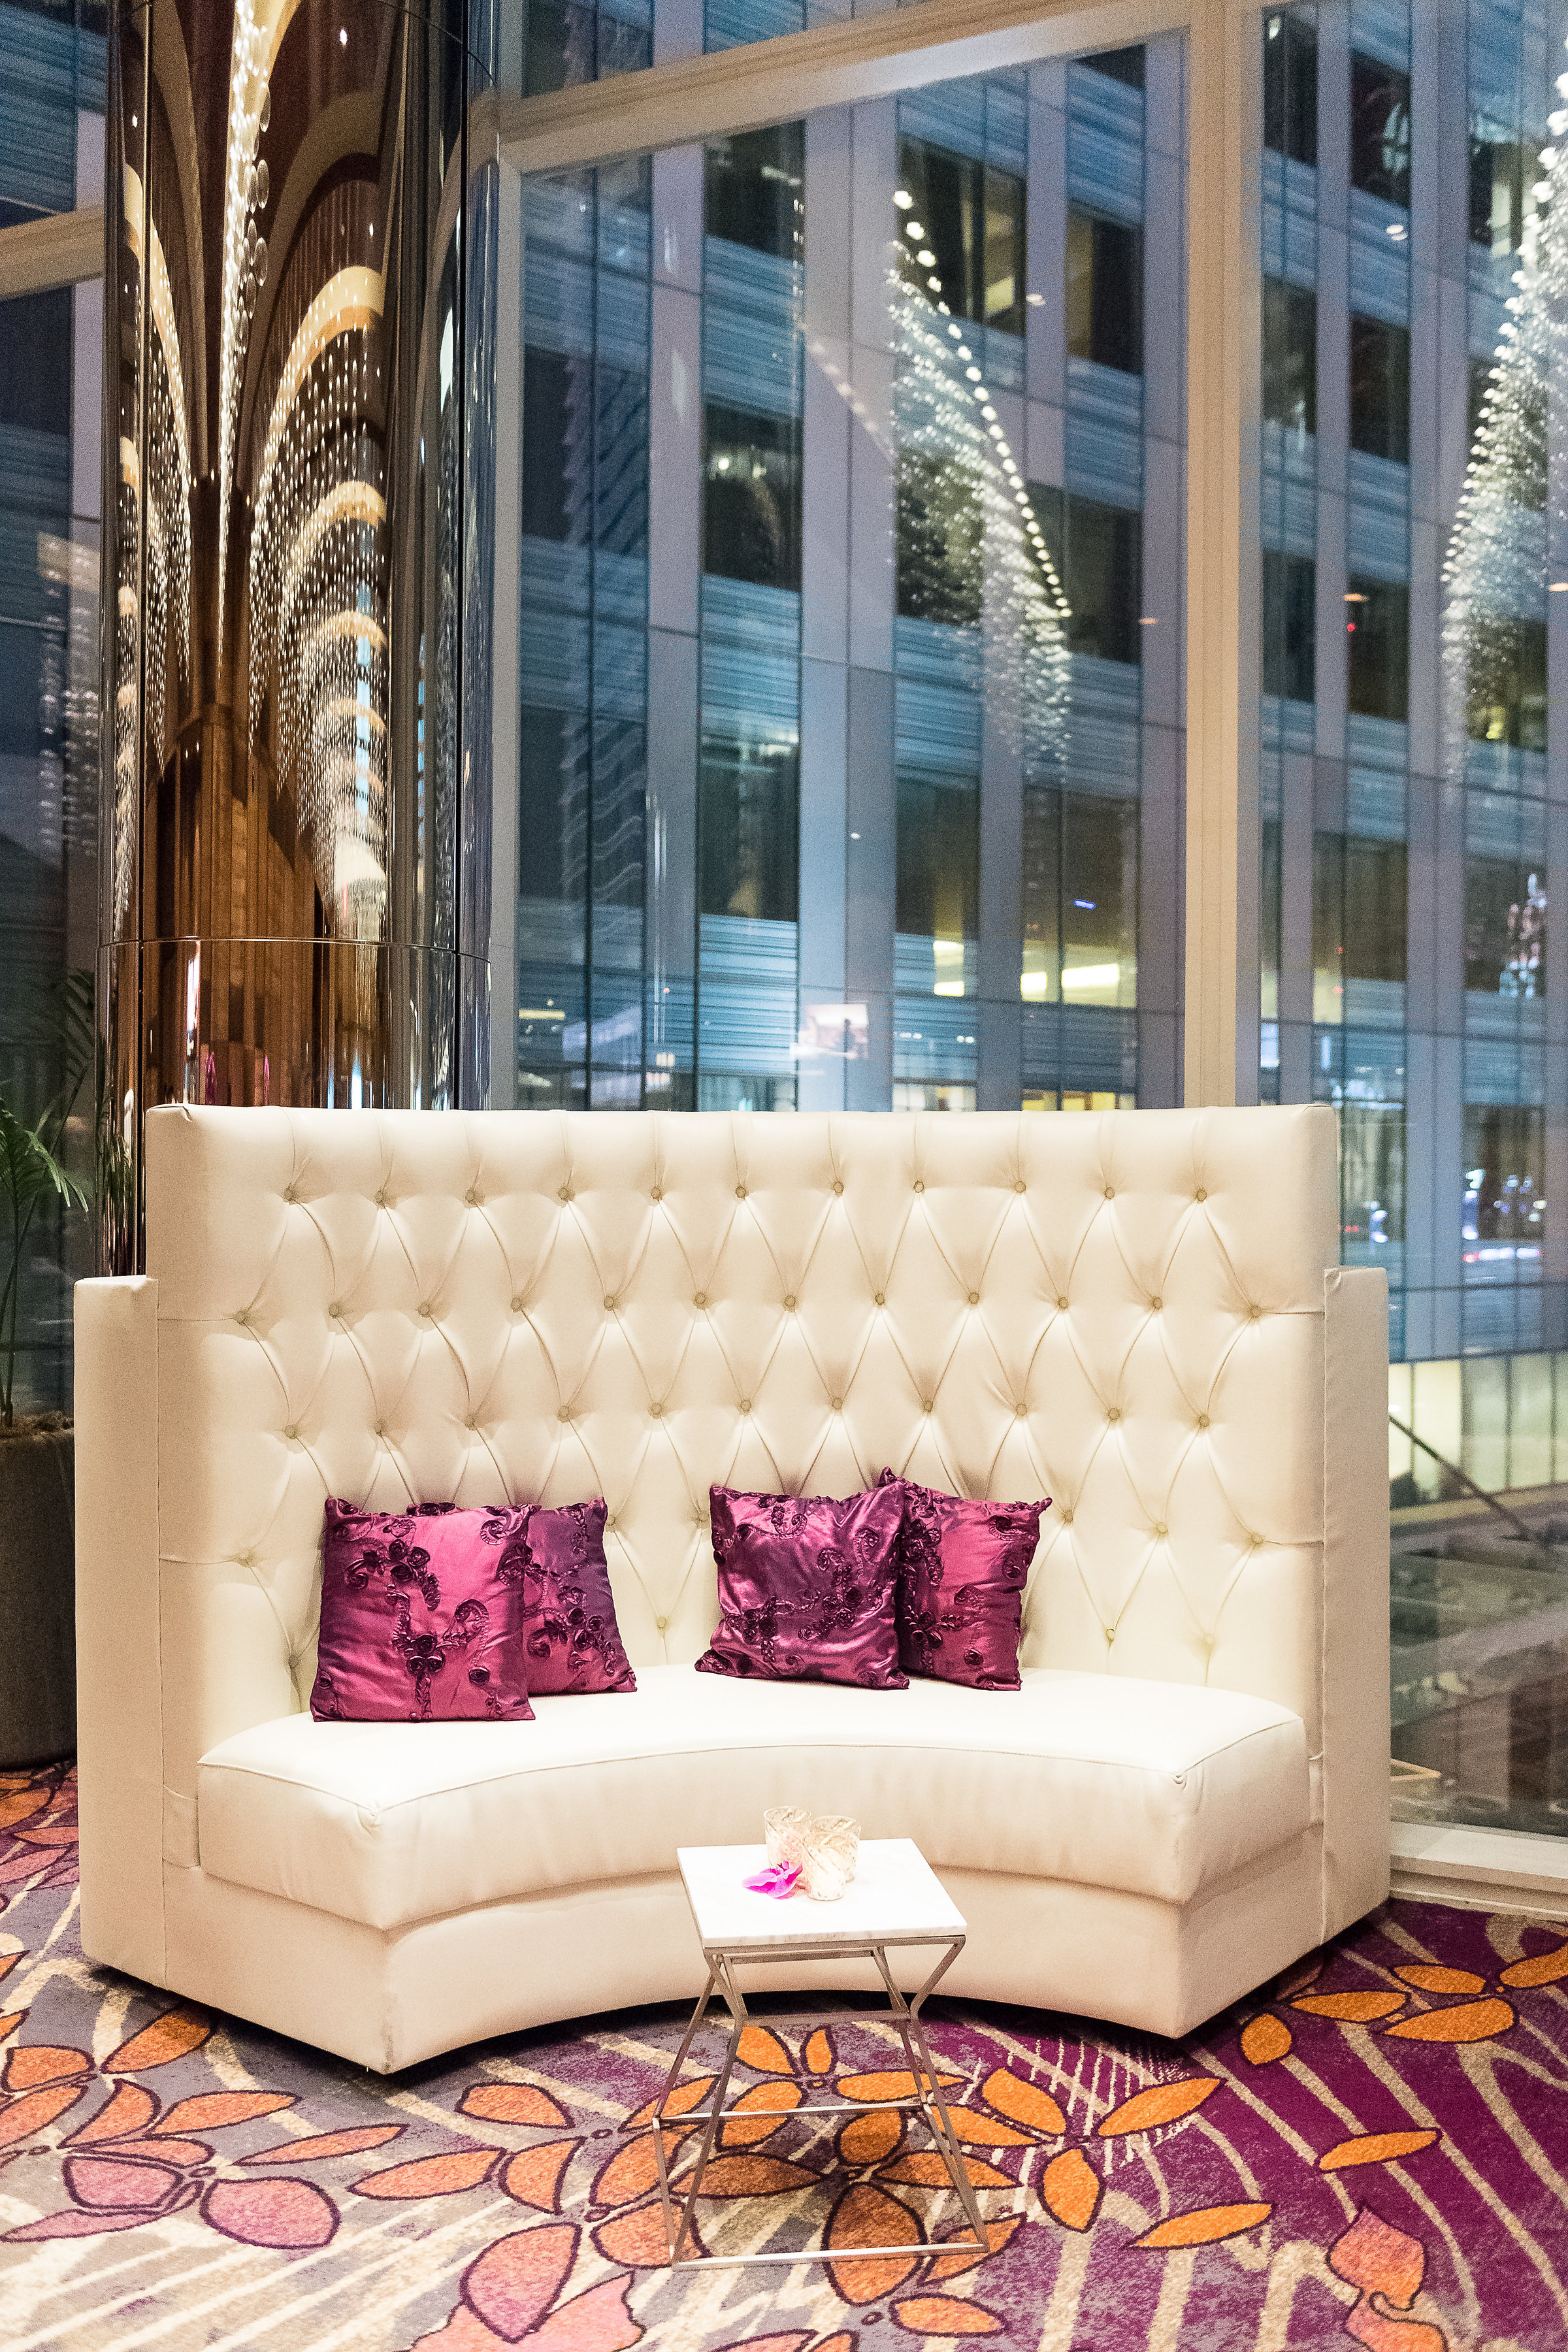 Tall white sofa at the cocktail reception of a wedding, Purple pillows.Wedding Planner: Andrea Eppolito Events    Photography  Brian Leahy    Videography  HOO Films    Venue & Catering: Mandarin Oriental / Waldorf Astoria   Floral & Decor: Destinations by Design    Lighting: LED Unplugged    Music: DJ Breeze II    Hair & Make Up: Amelia C & Co    Invitations by  Bliss & Bone    Menu and Escort Cards by  Meldeen